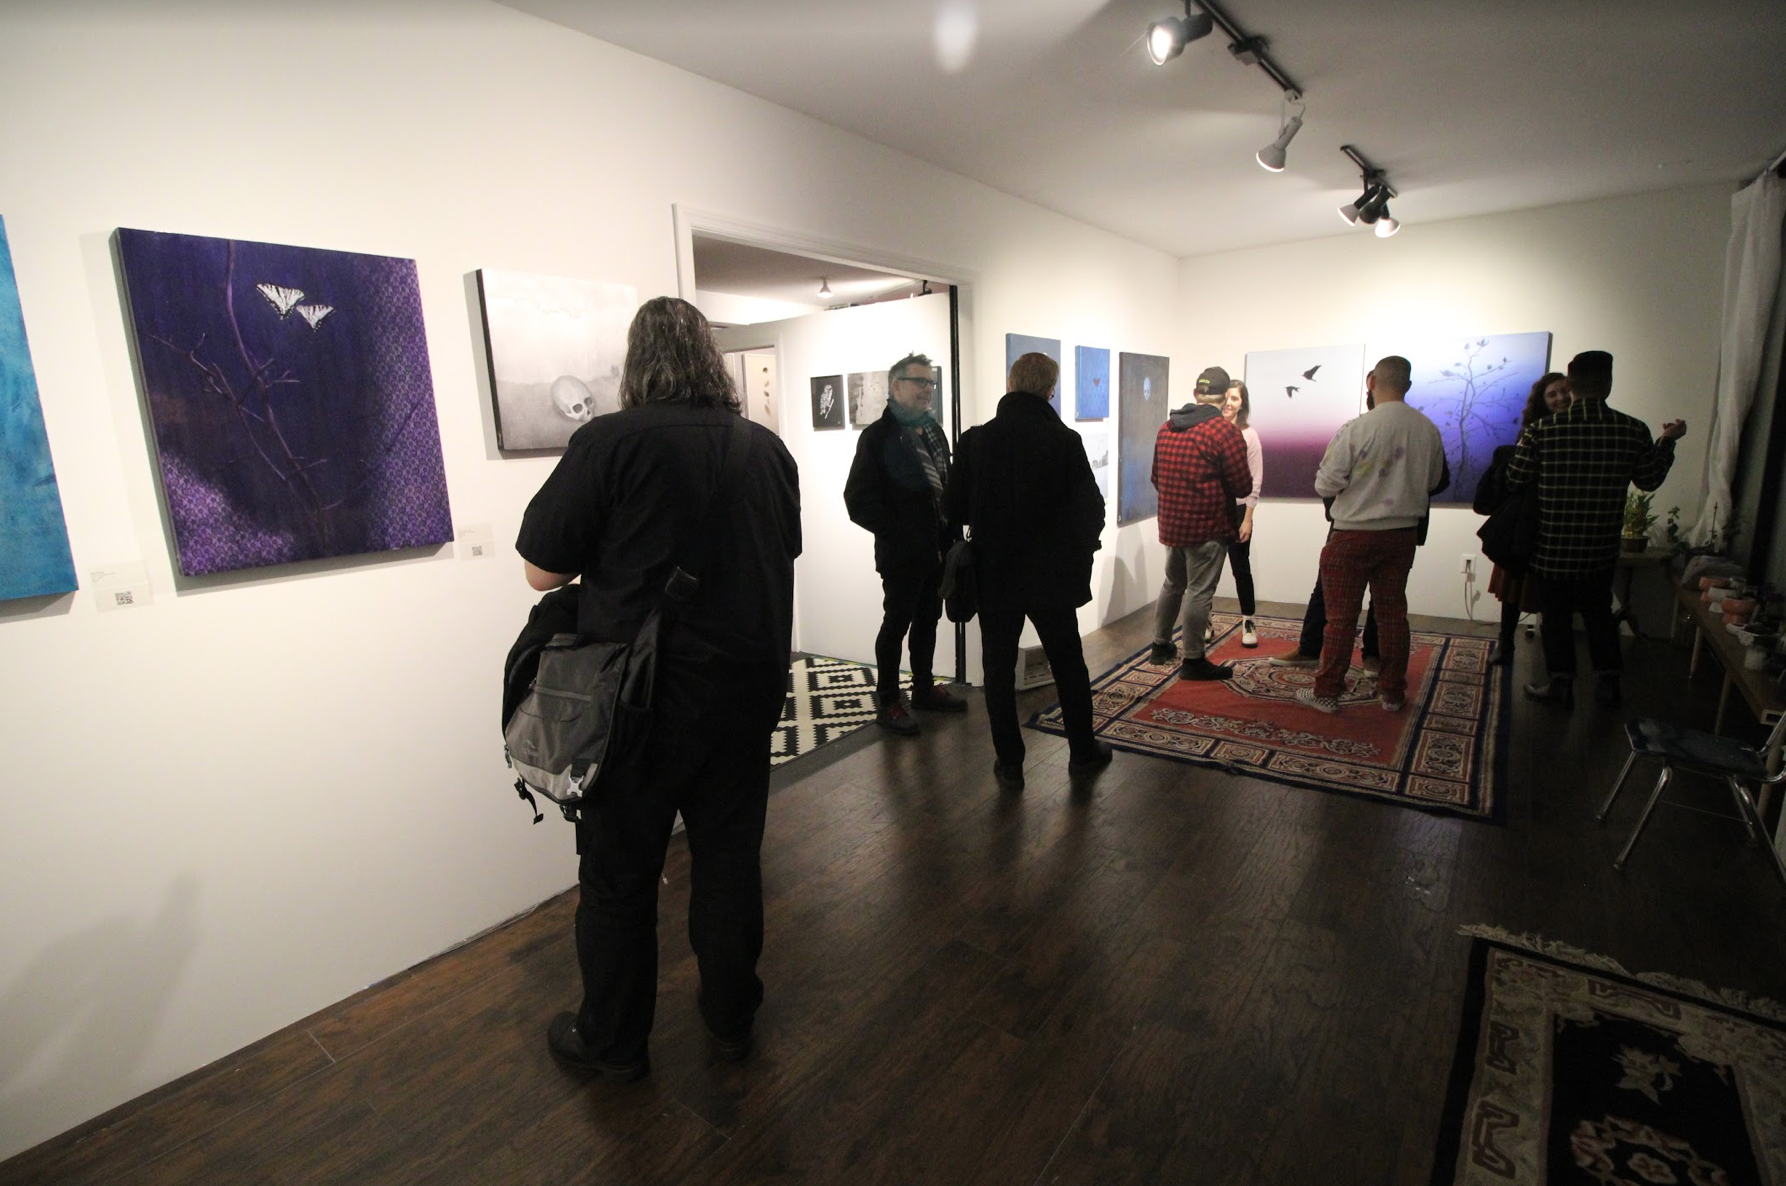 Ecosystems opening reception February 8th, 2019